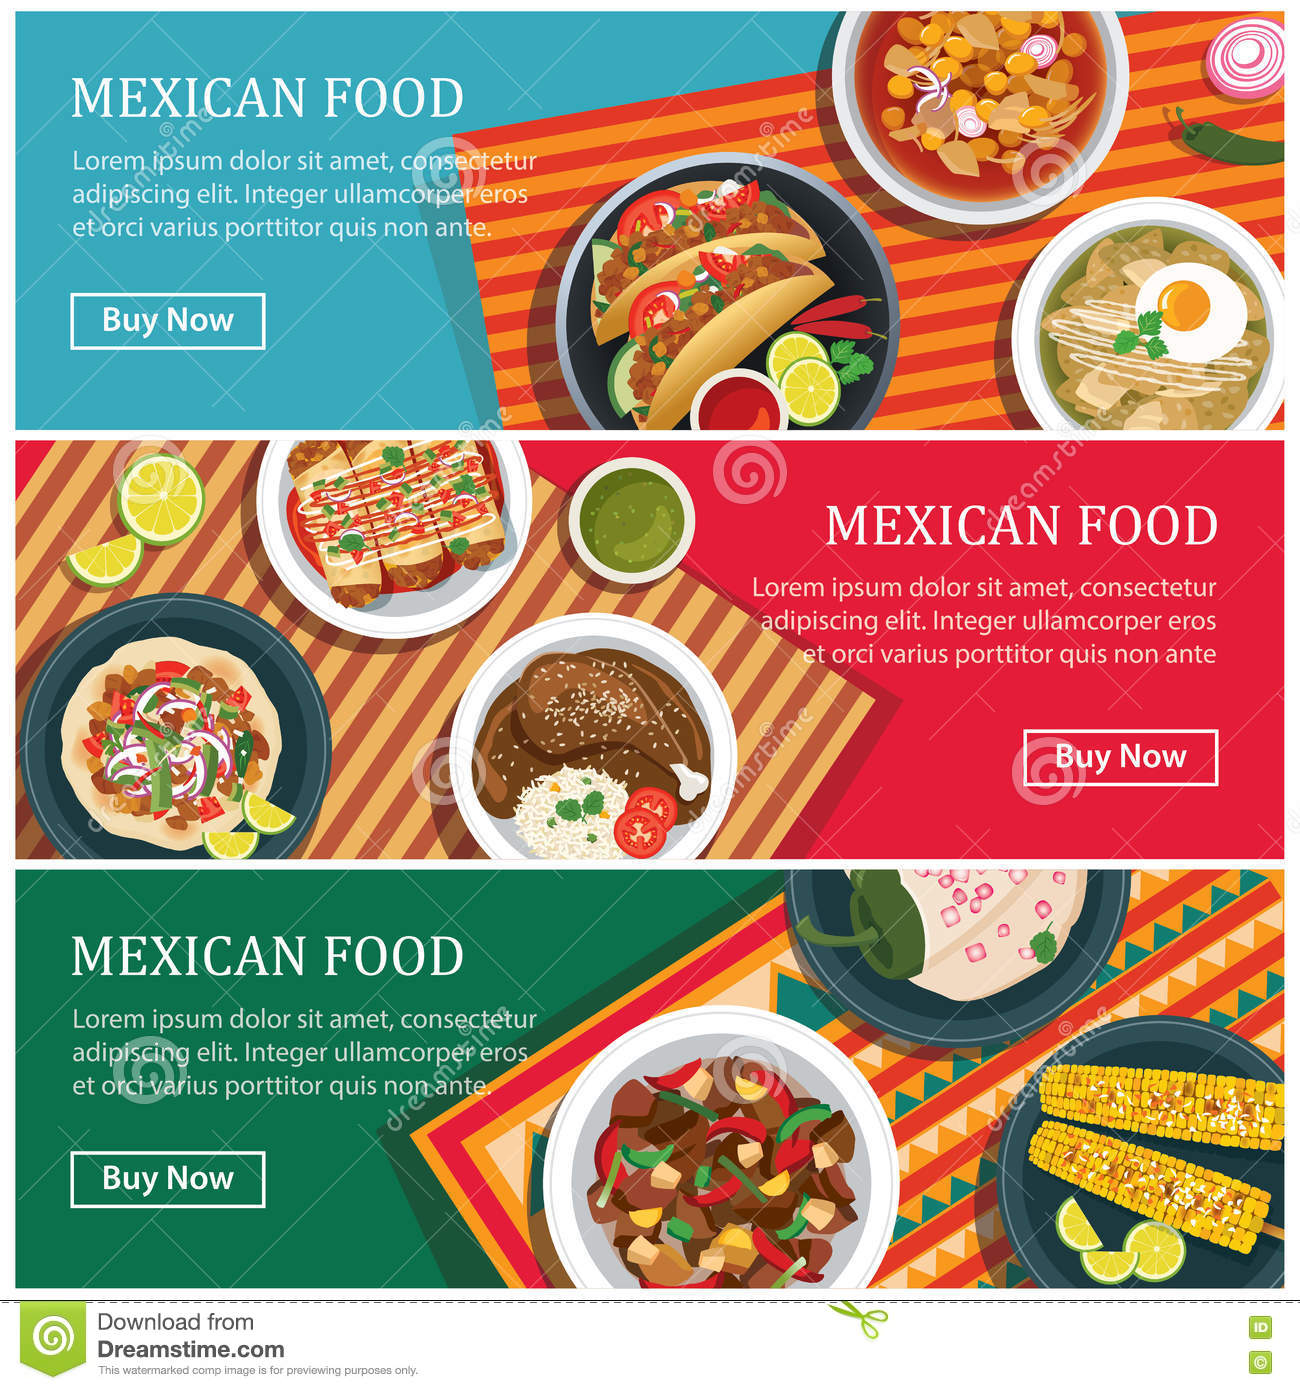 mexican food web banner flat design stock vector  image: 73070951